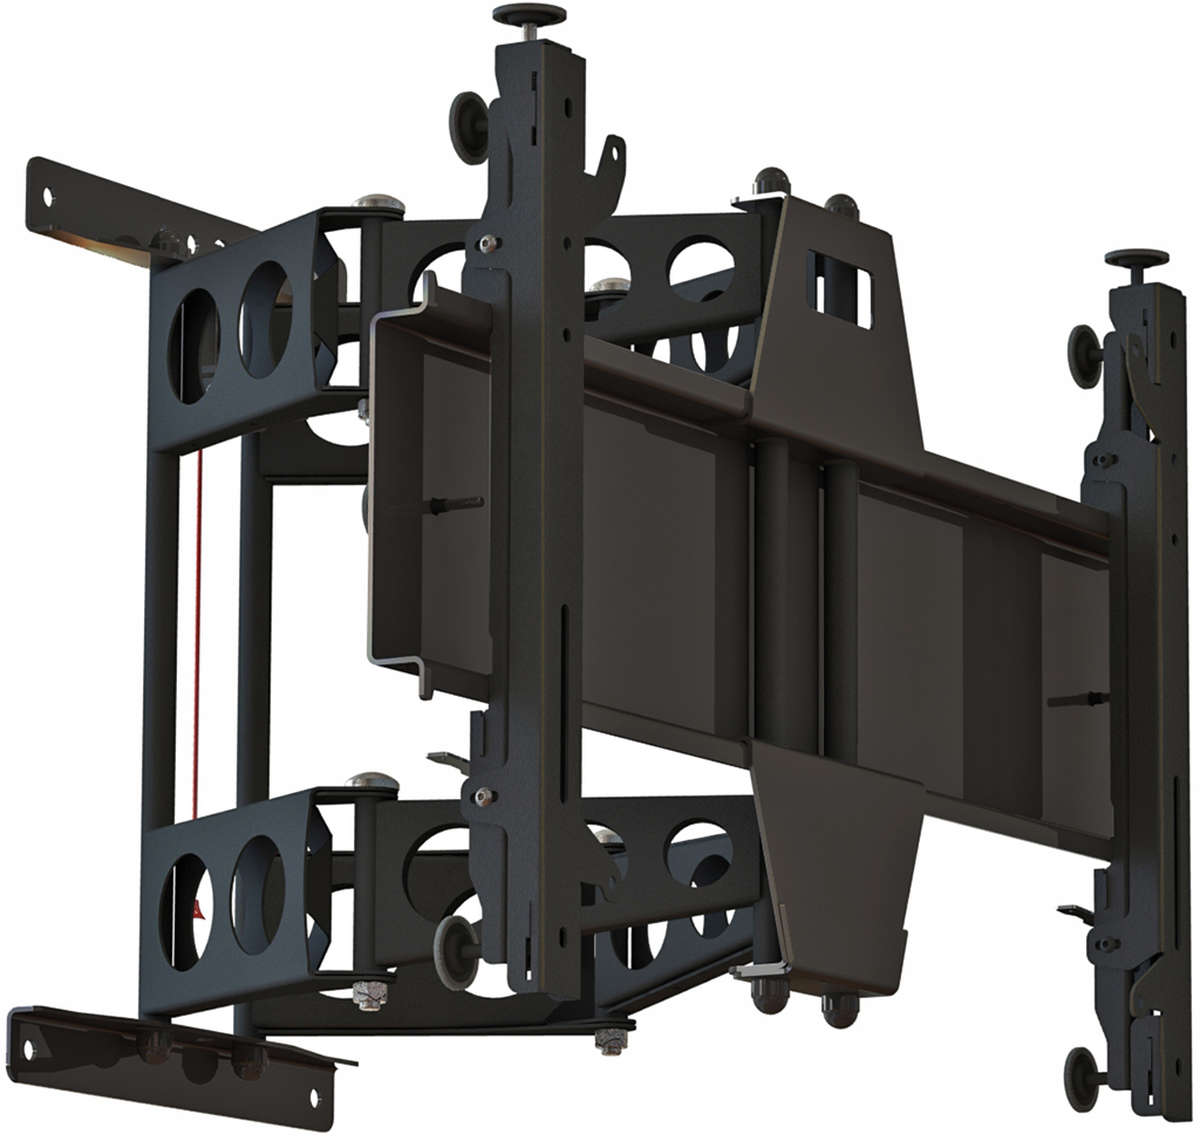 Unicol PLA4 Heavy duty double articulated swing our wall bracket for large format displays up to 130kg product image